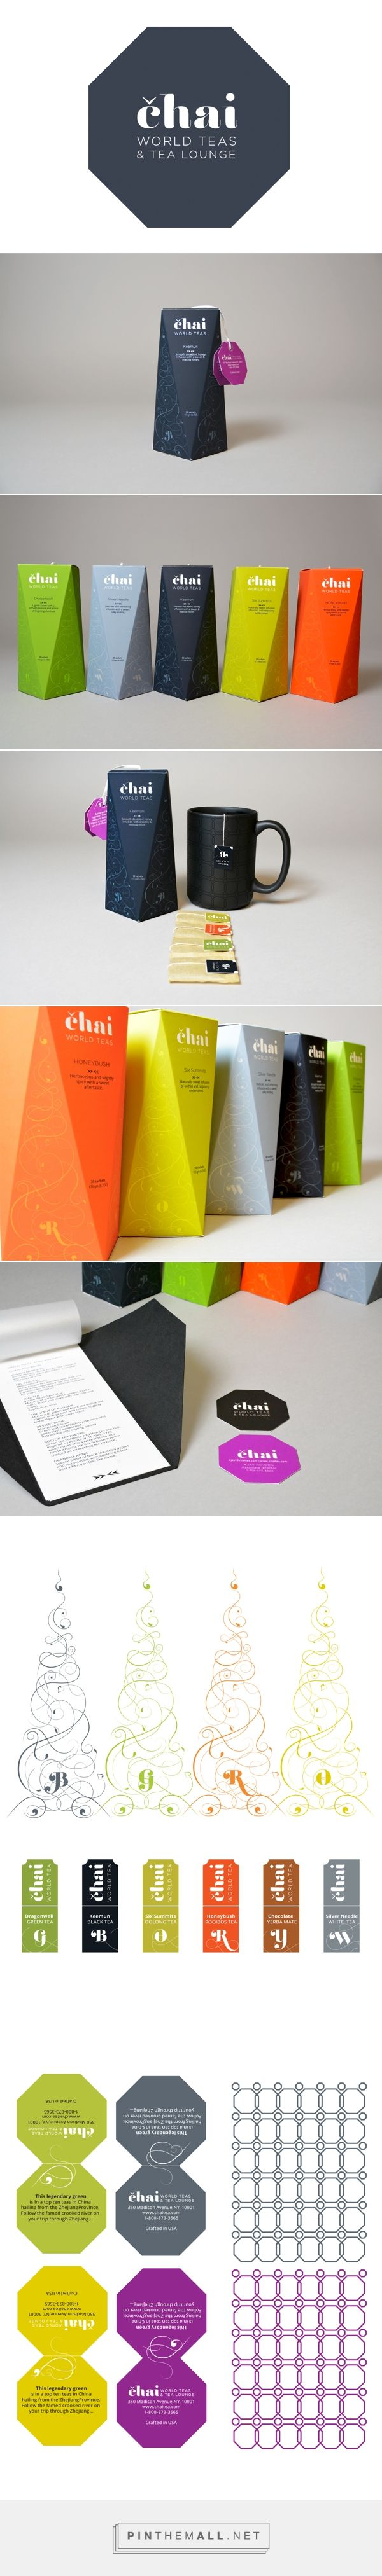 Chai Tea & Lounge - American Package Awards Winner 2014 on Behance... - a grouped images picture - Pin Them All